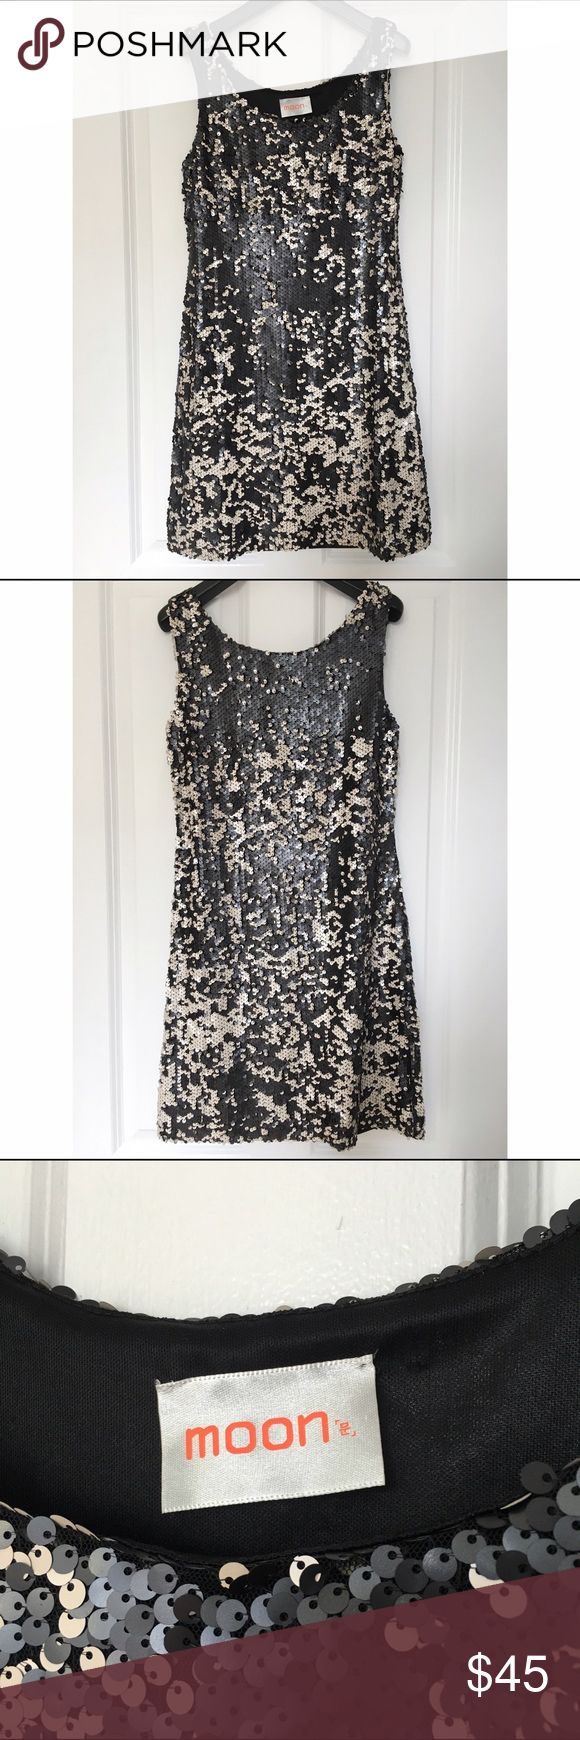 Selling this FLASH SALE - black and white sequin dress - nwot on Poshmark! My username is: janeelookerse. #shopmycloset #poshmark #fashion #shopping #style #forsale #Dresses & Skirts